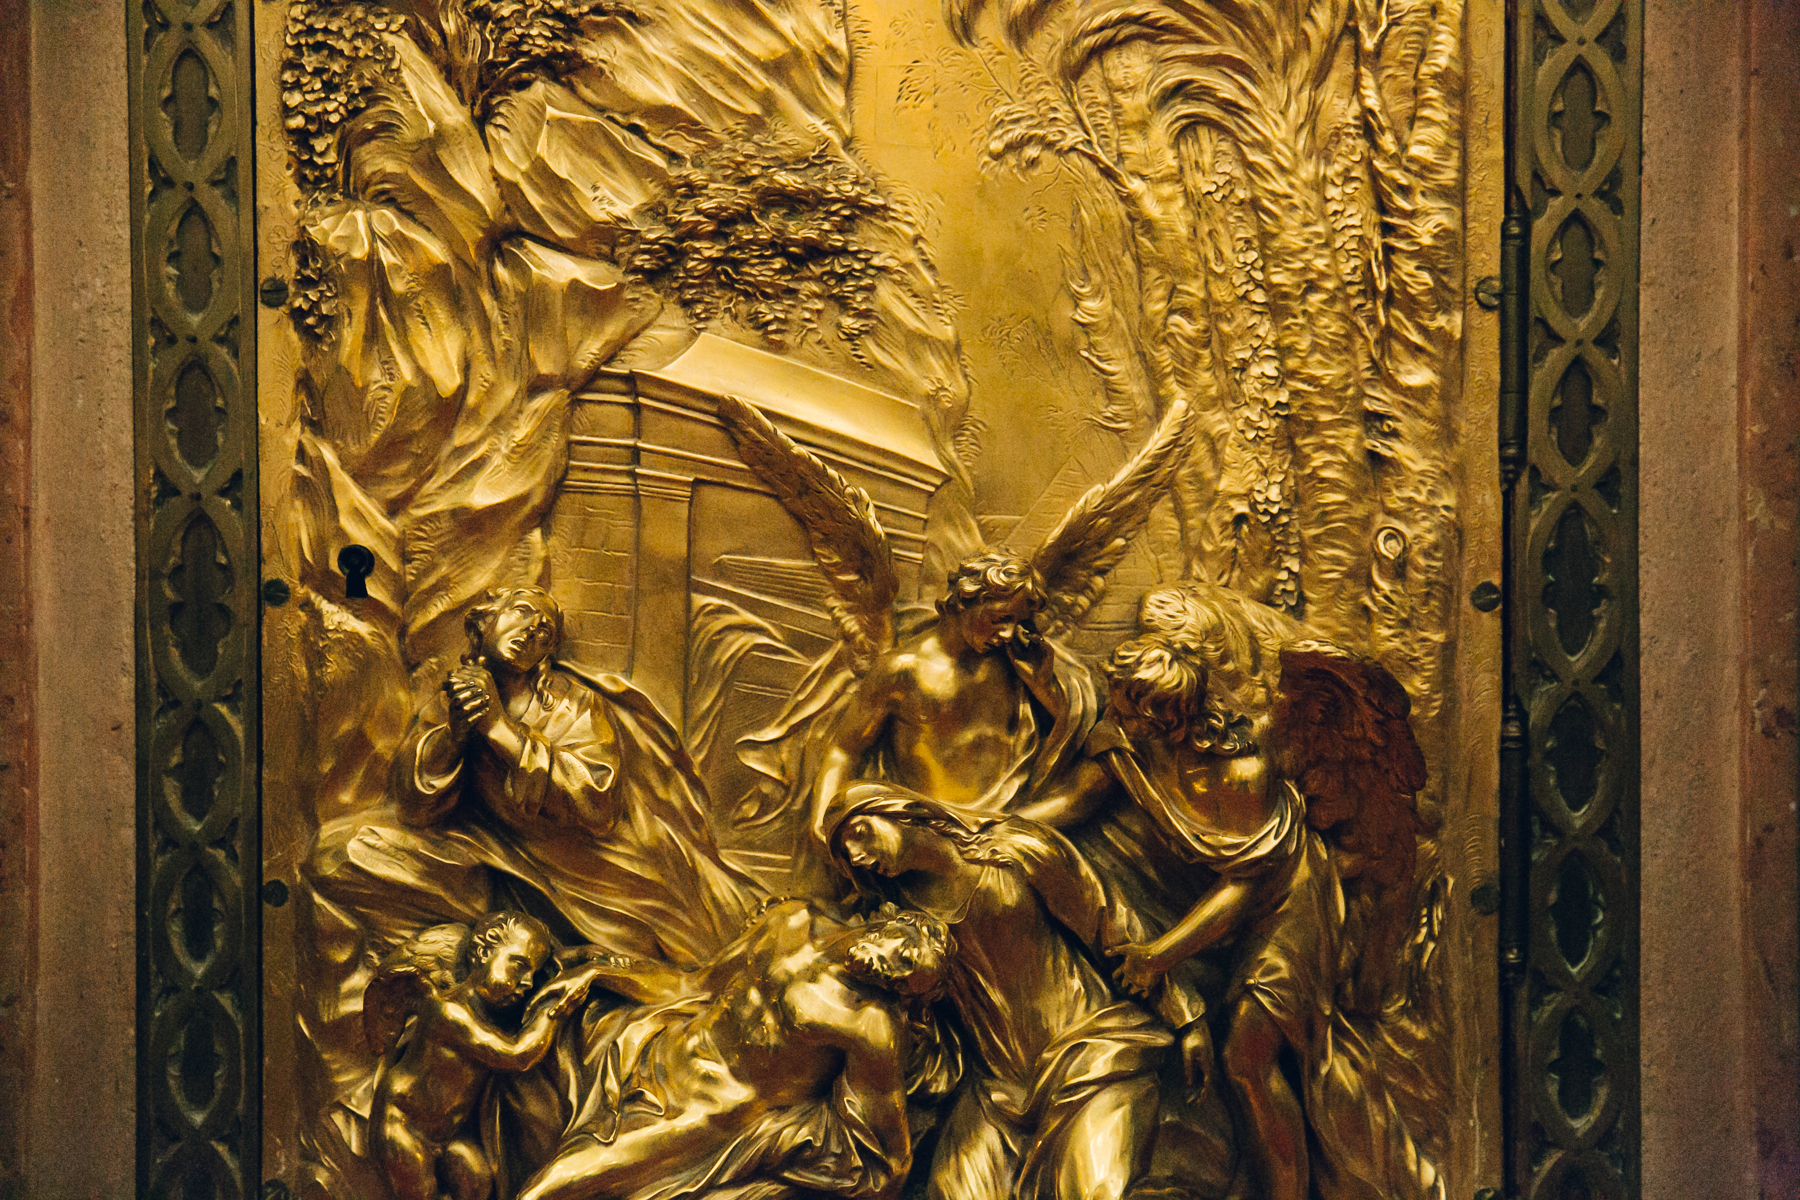 Gold artwork inside the Mezquita in Cordoba, Andalusia.